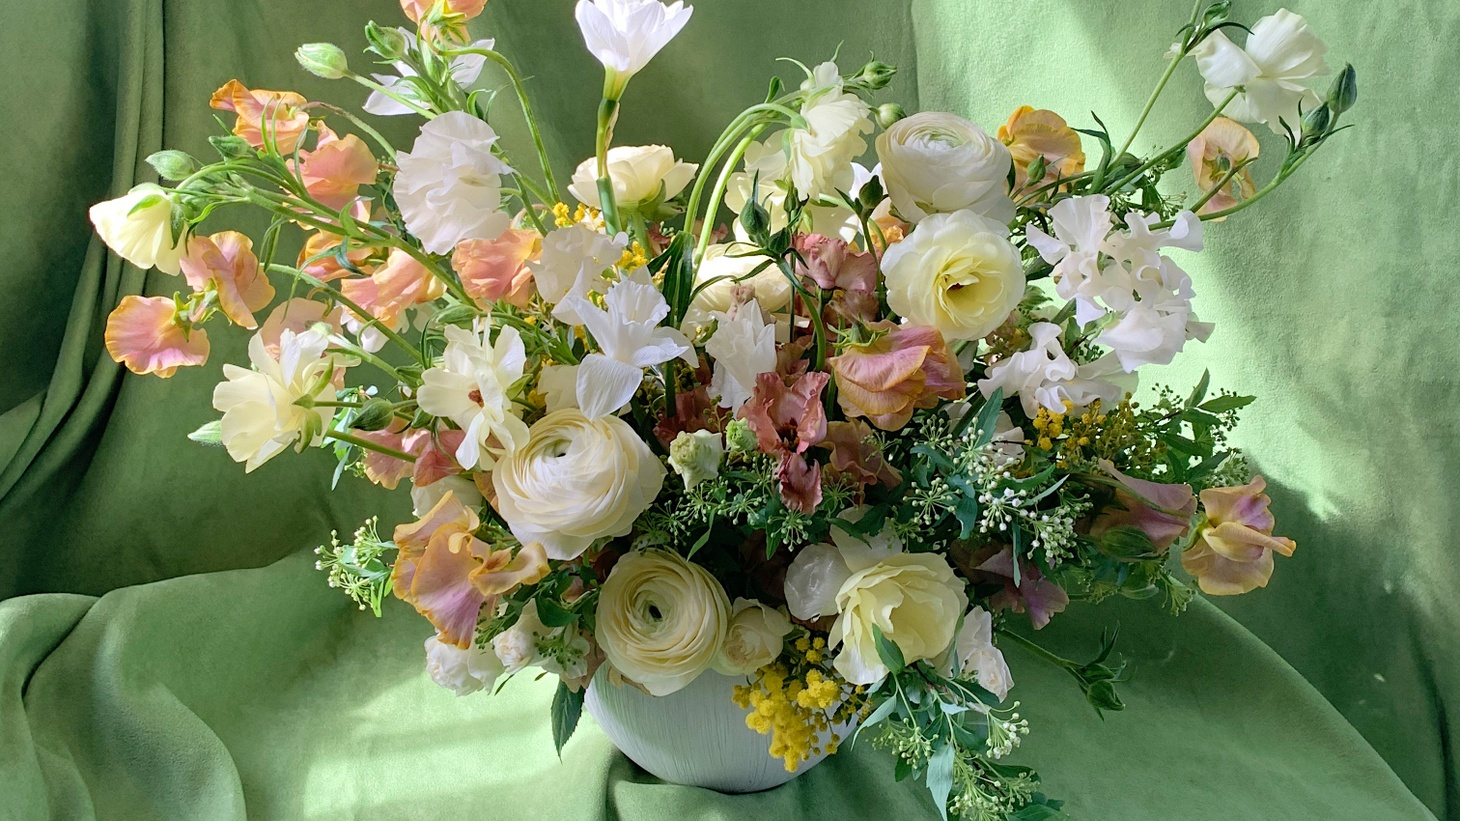 Sending and receiving flowers has been one way of staying connected to other people and nature while being sheltered at home. Here's one artful arrangement of spring flowers by Whit Hazen.